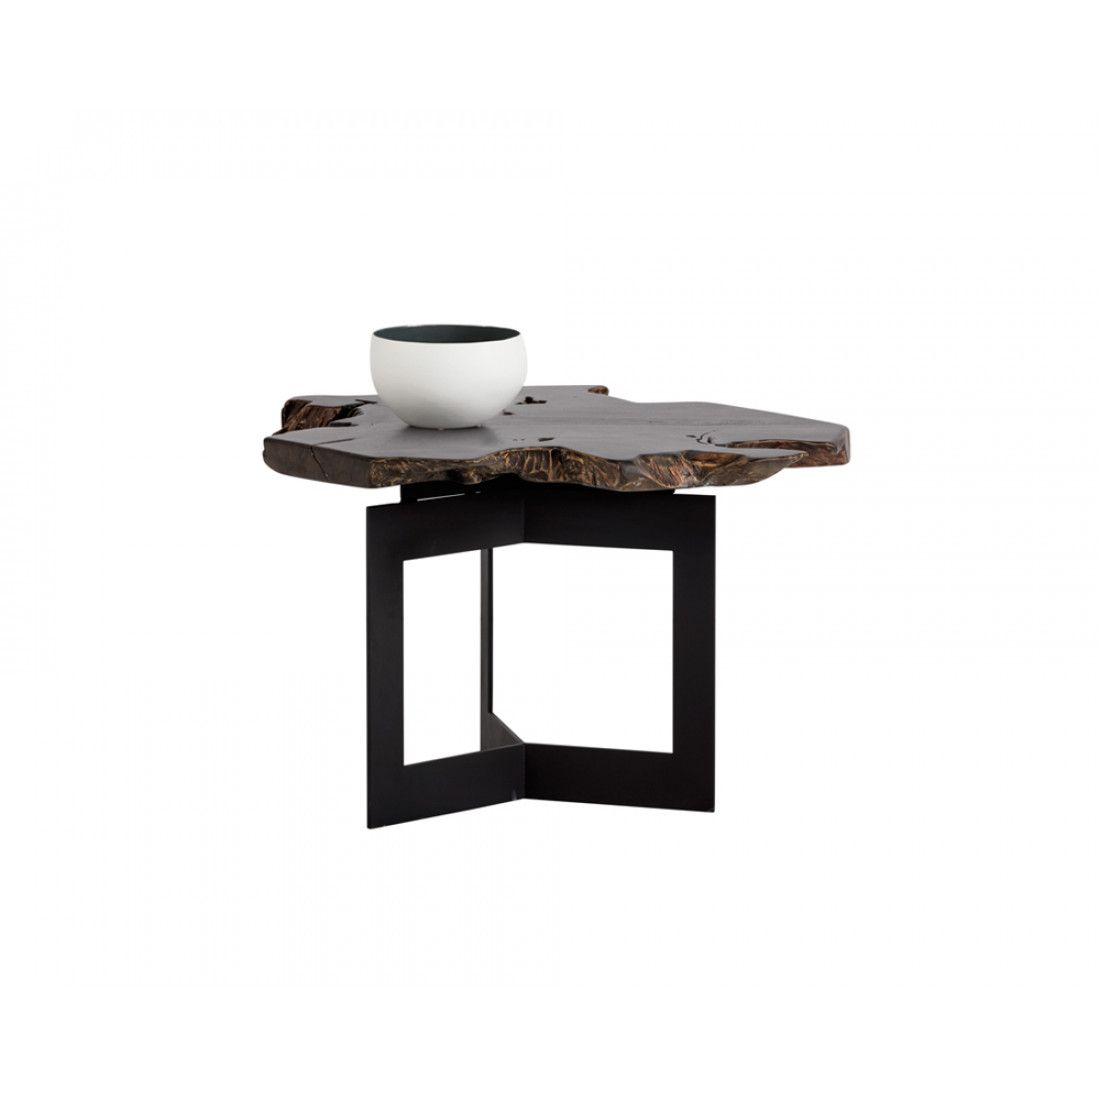 Shop for WYATT END TABLE at France & Son for the best deals. Free shipping on all orders over $199 in the US.